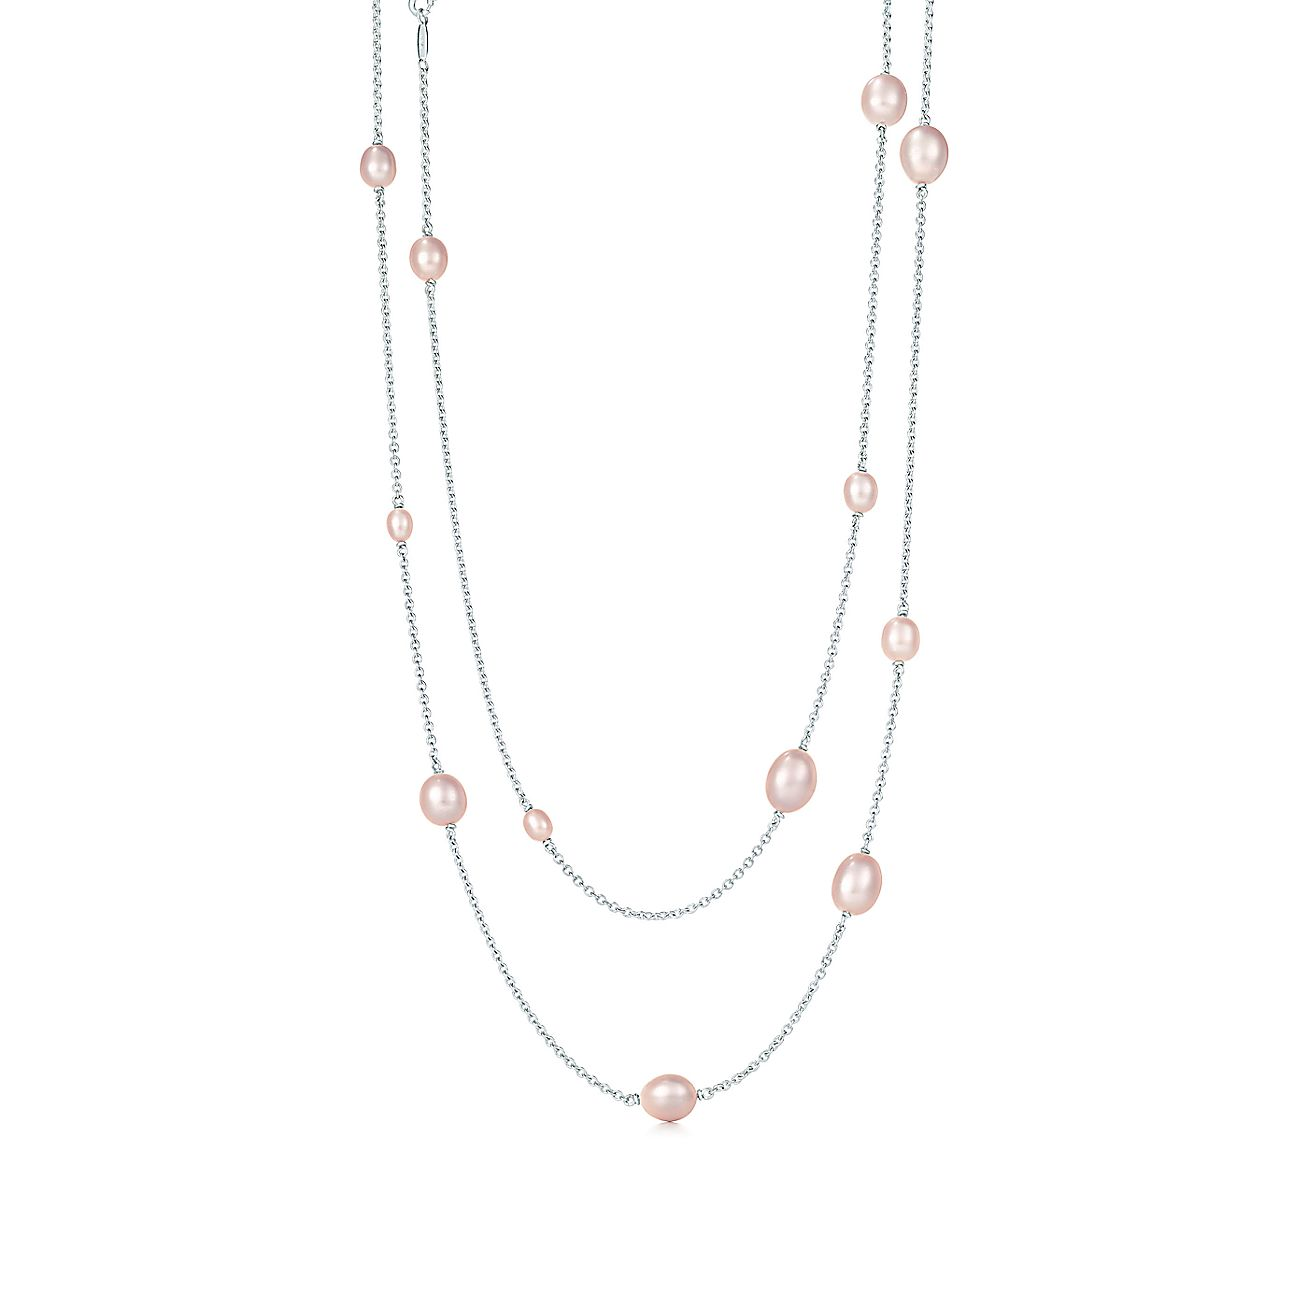 Elsa Peretti 174 Pearls By The Yard Sprinkle Necklace Of